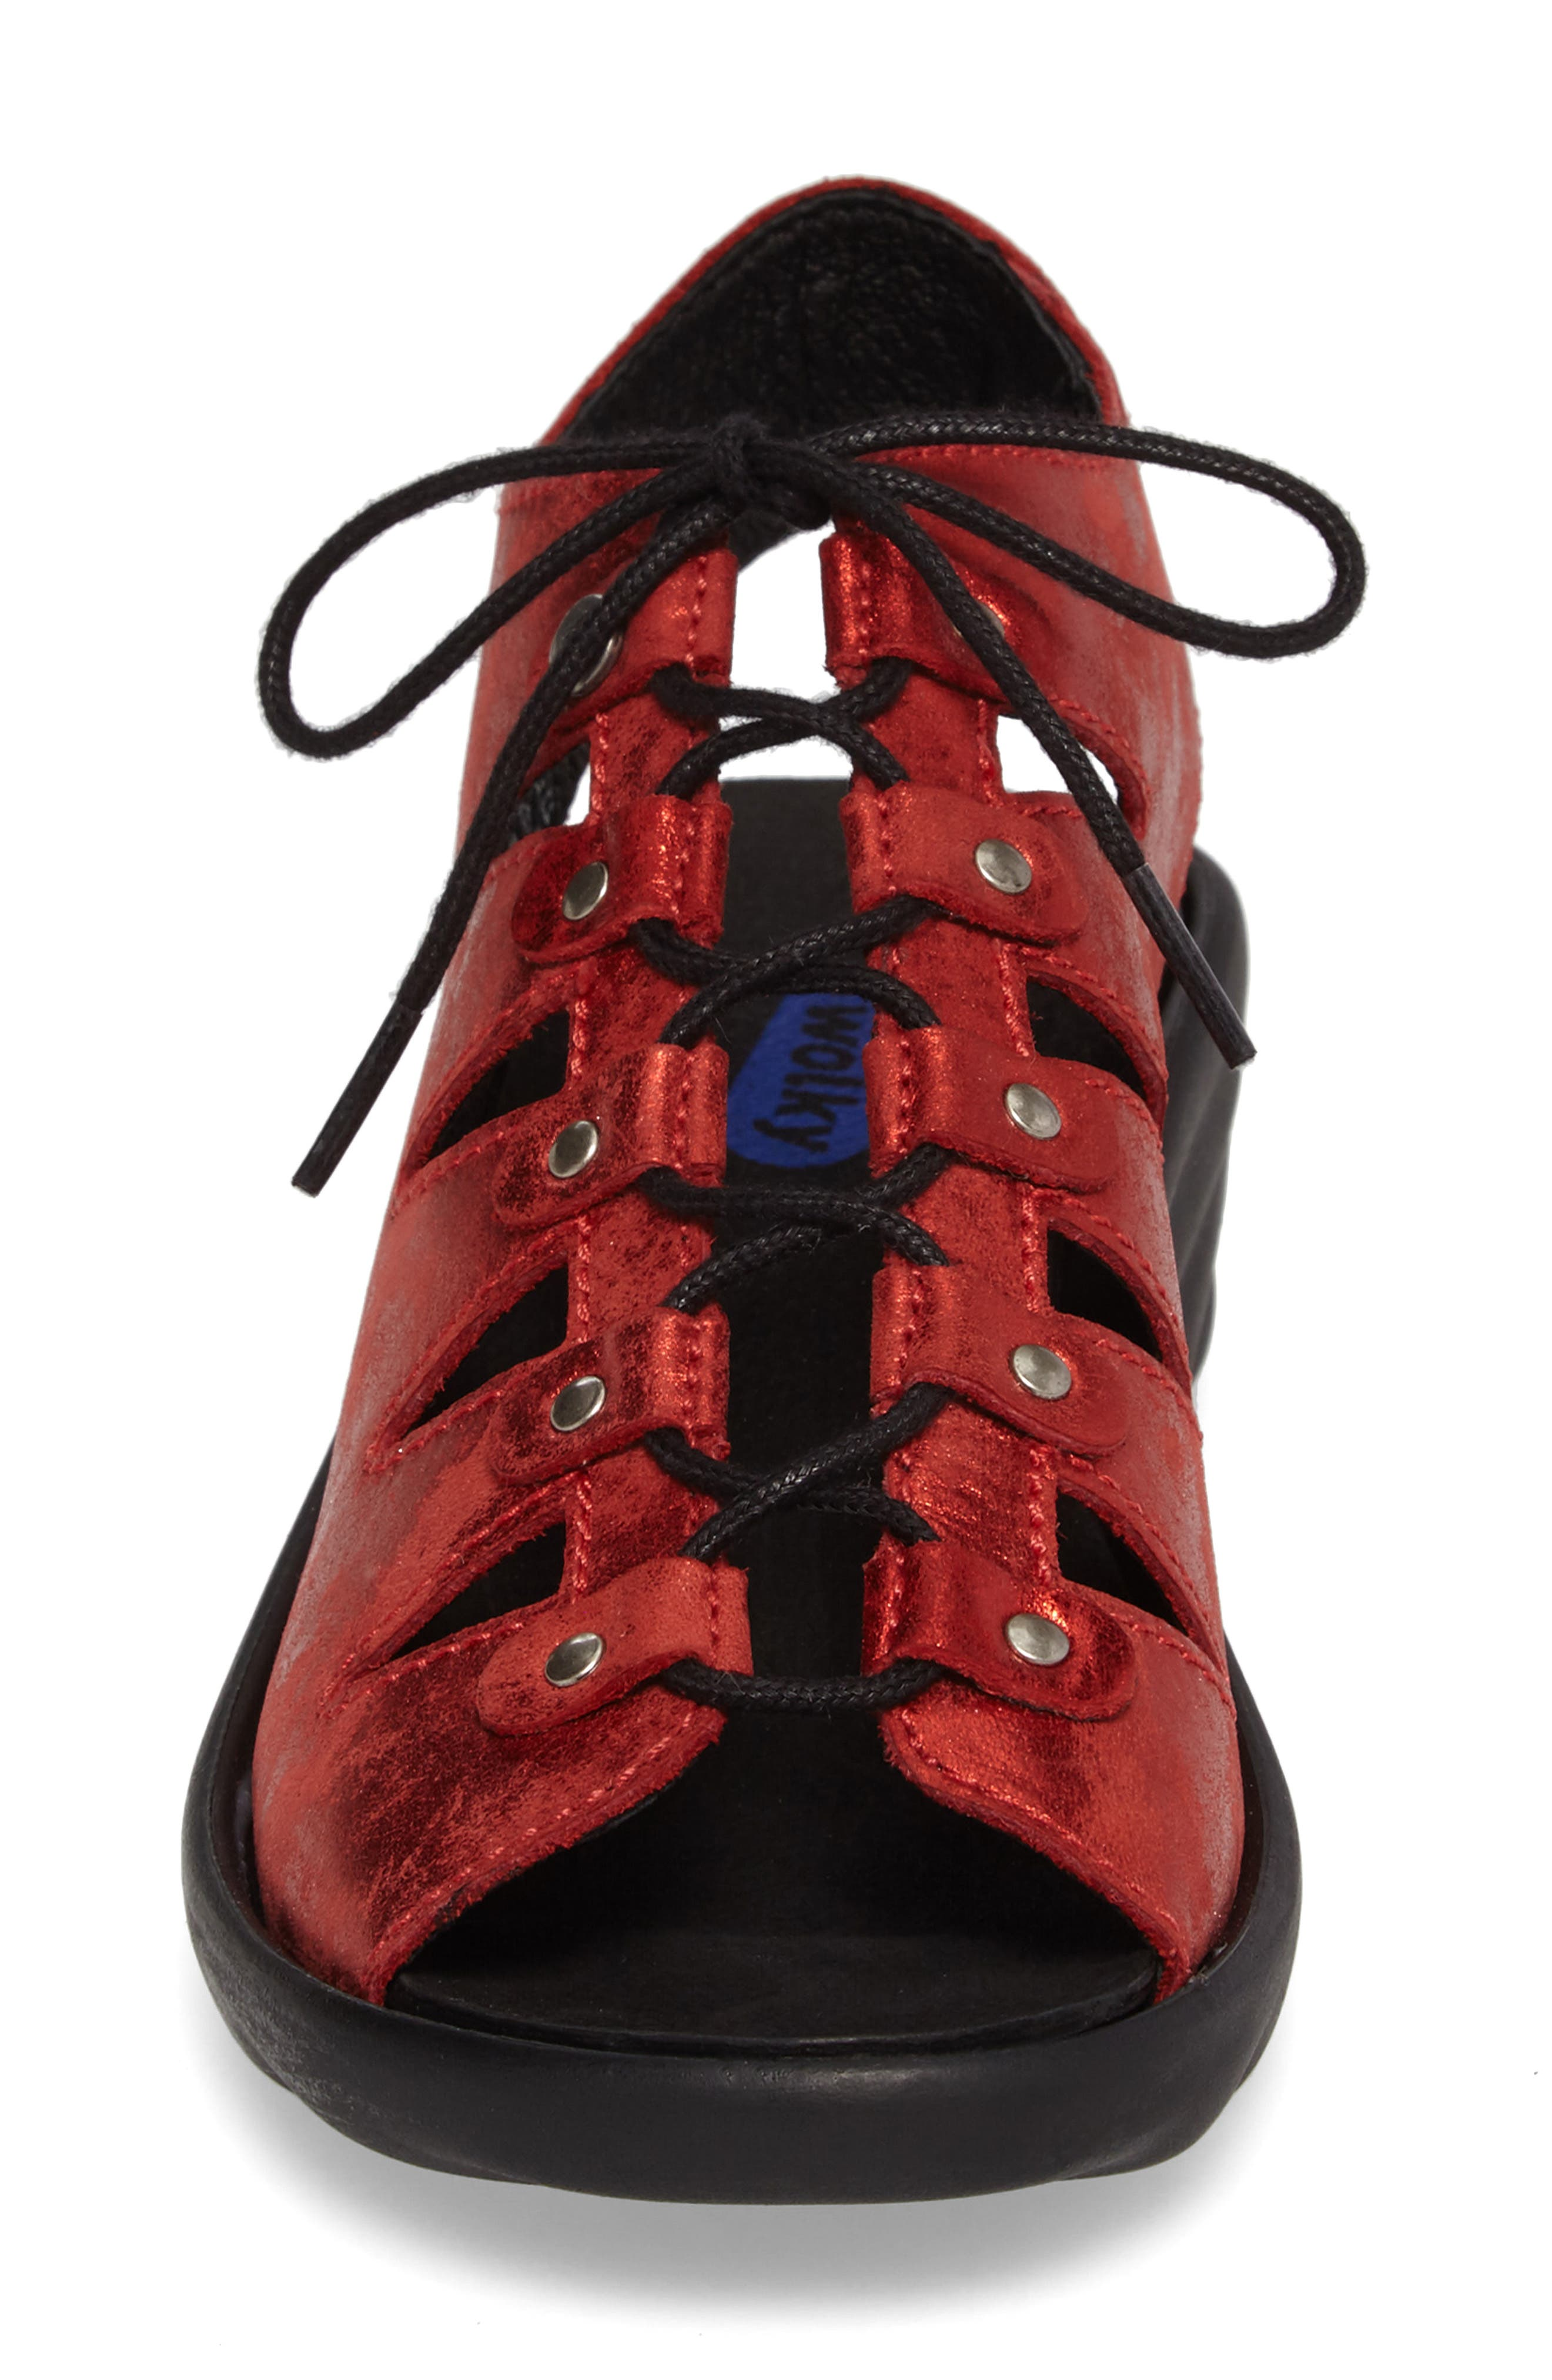 Arena Sandal,                             Alternate thumbnail 4, color,                             Red Nubuck Leather